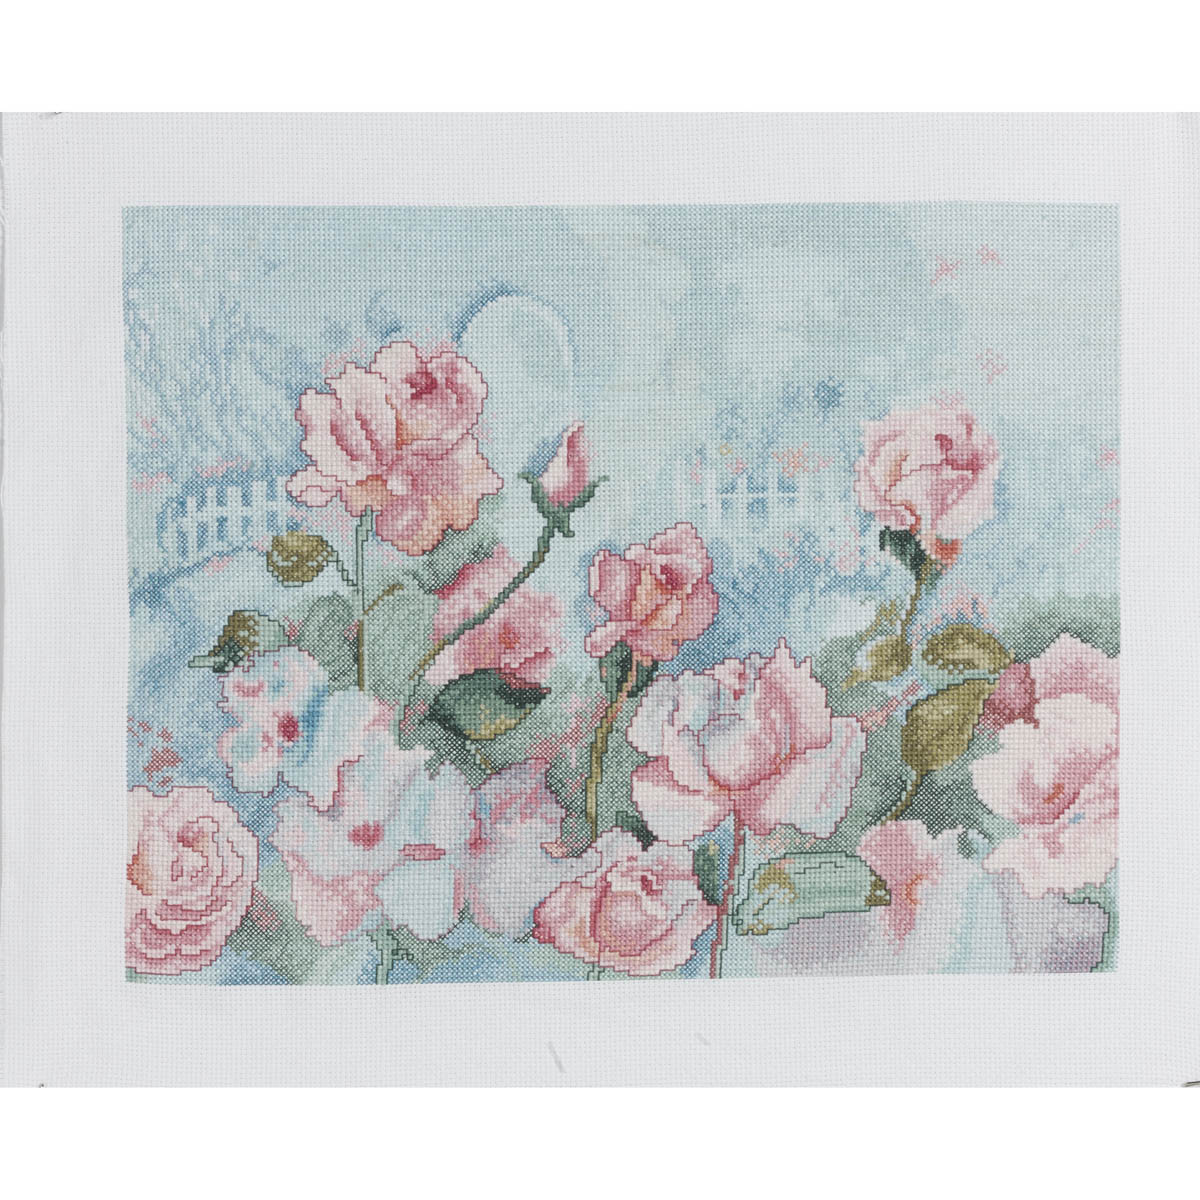 Bucilla ® Counted Cross Stitch - Picture Kits - Rose Romance - 46470